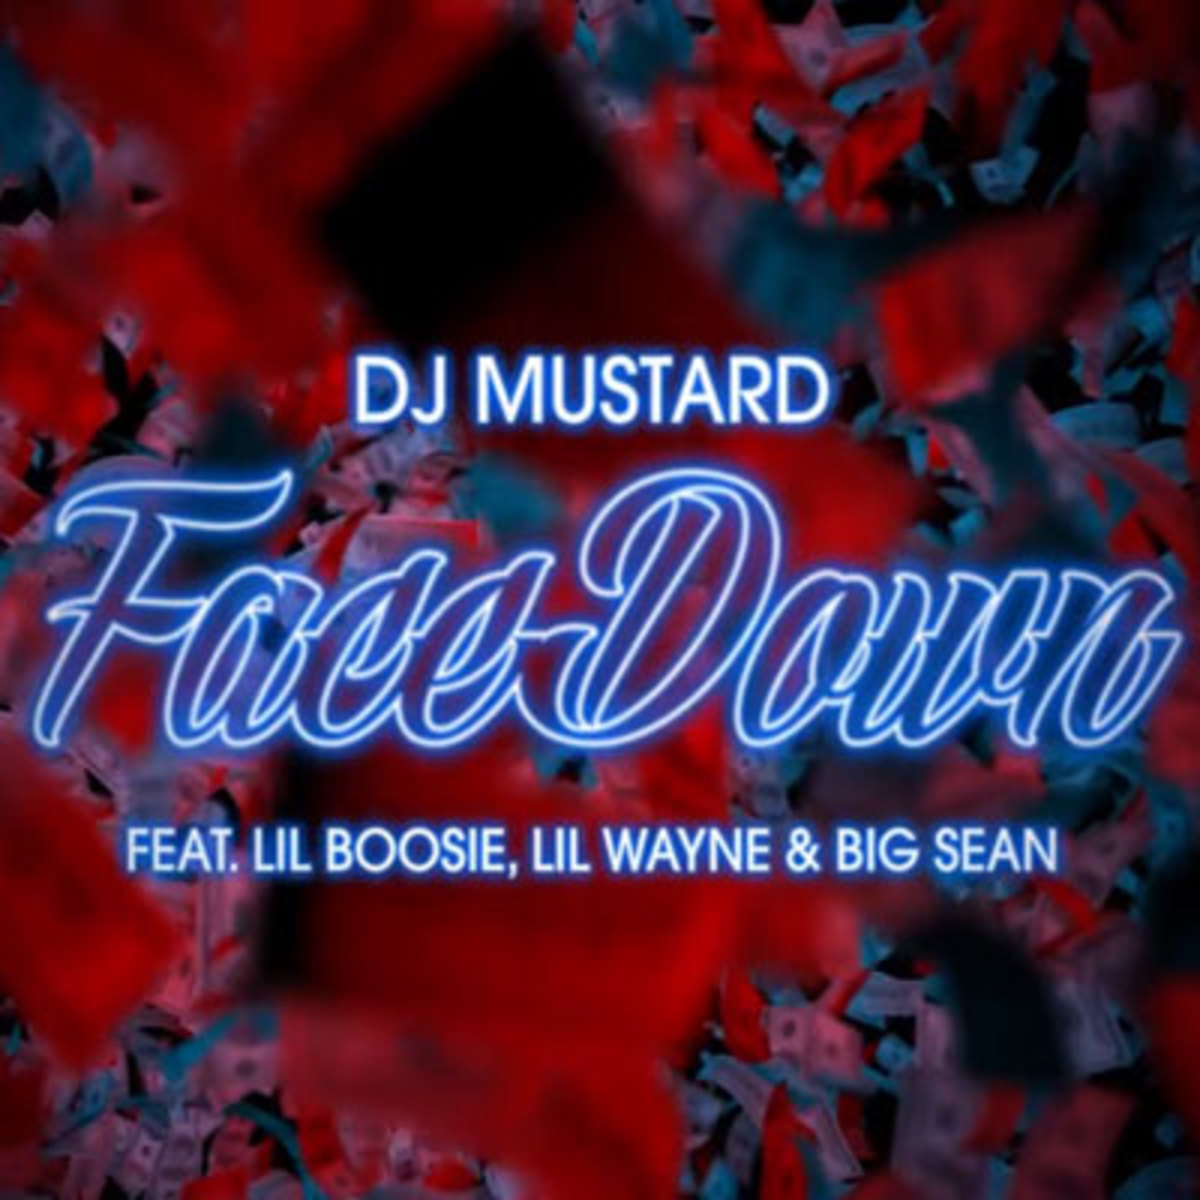 djmustard-facedown.jpg